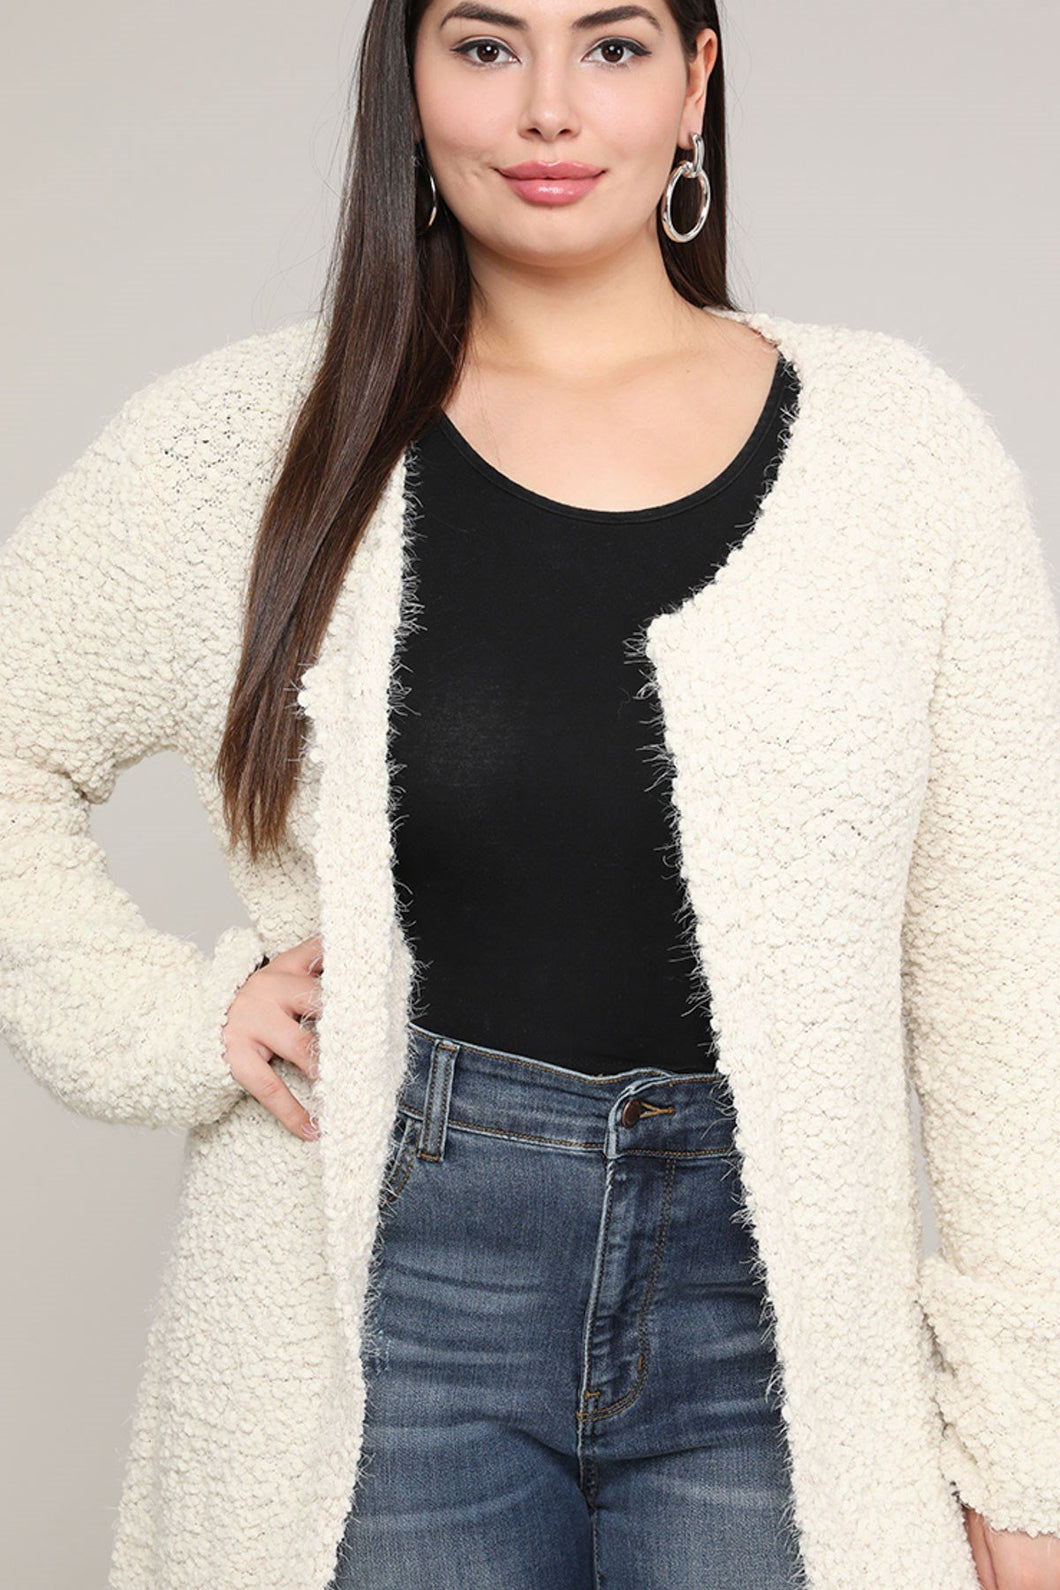 Extended Sizes Beige Open Cardigan - Oversized 2Xl Clothing